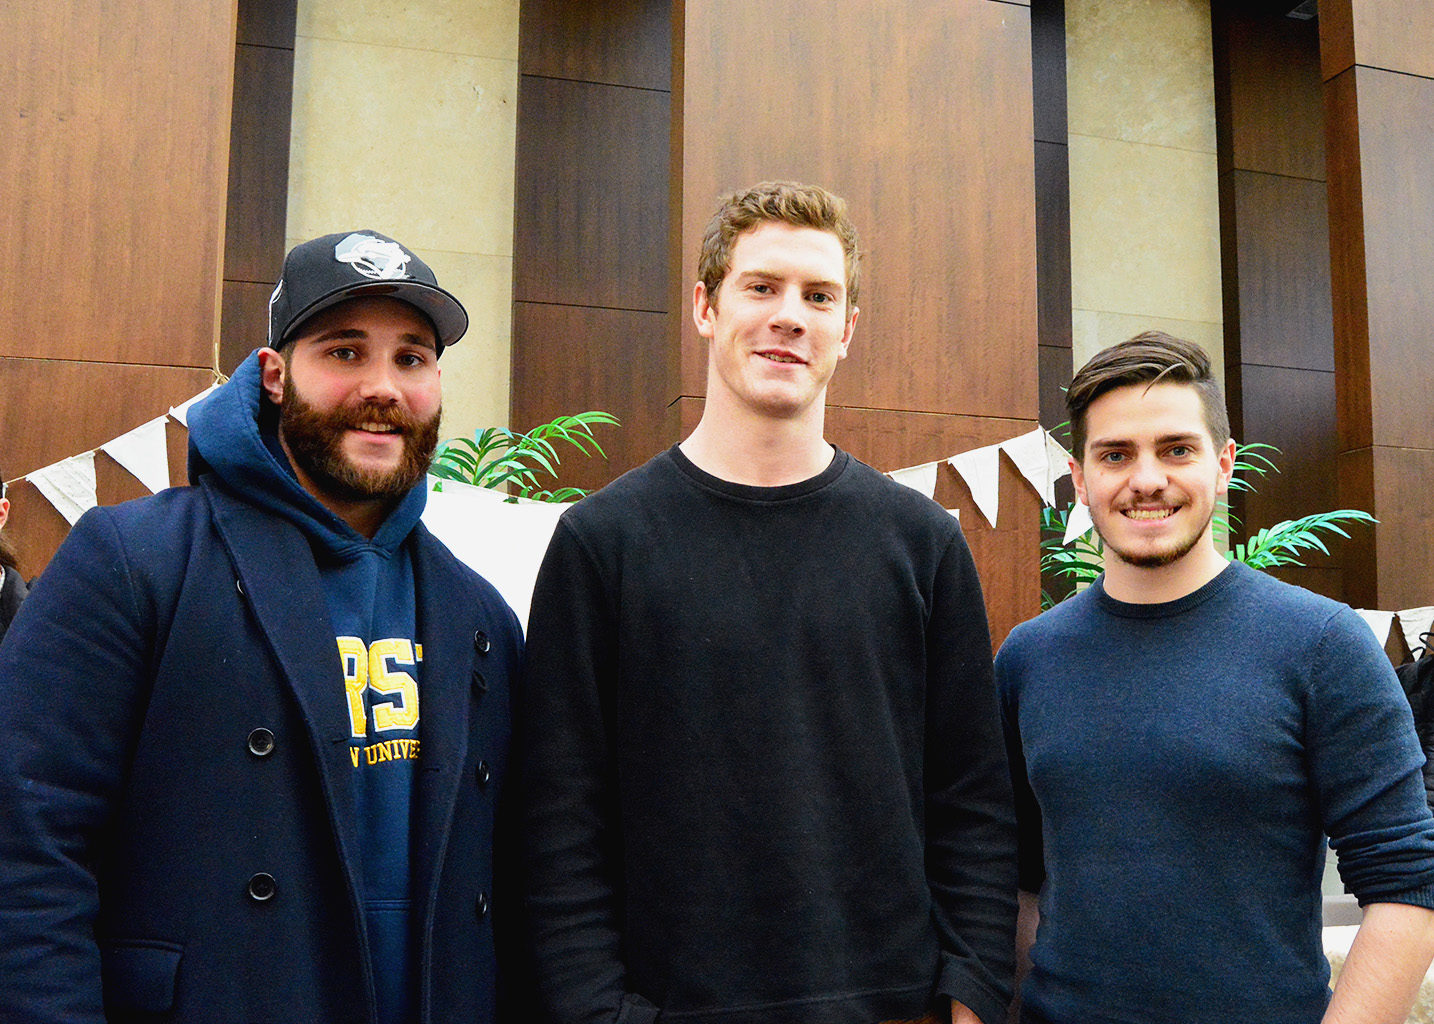 [Left to right] Alexander Mines, Tanner MacDonald, and Trevor McConnell, three of the four founders of the Food Innovation Hub, attend the Urban Farm Fall Harvest Party on October 25, 2016. Osama Sbeitan (not pictured) is the fourth founder and director of the Food Innovation Hub. (Courtesy Chayonika Chandra)